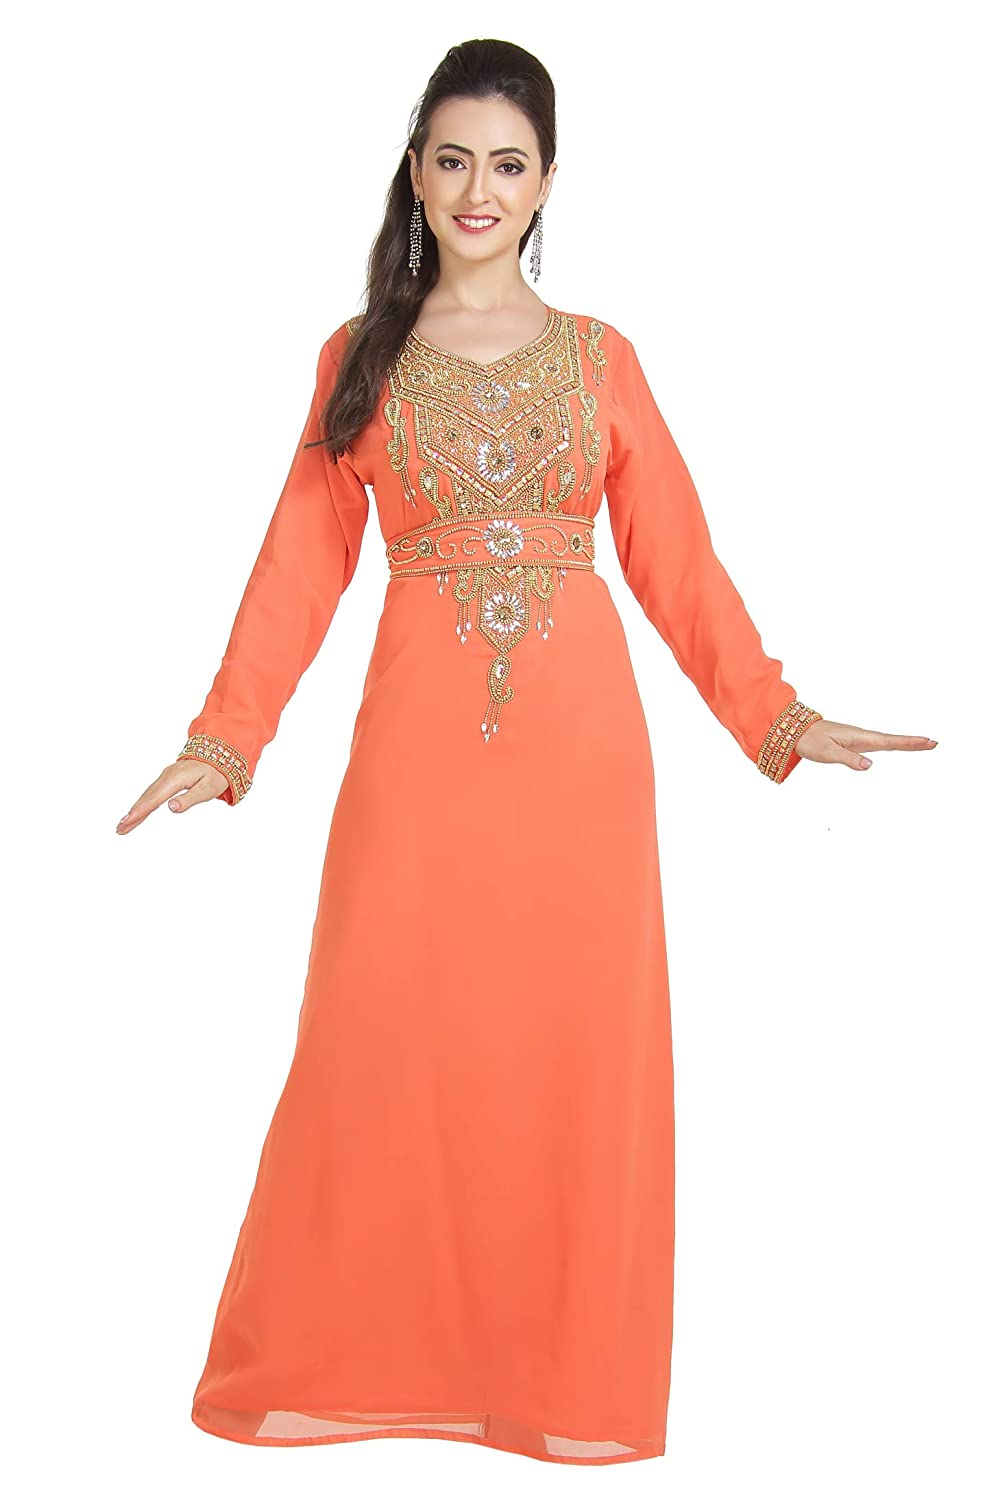 Henna Party Wear Walima Gown Maxi for Daily Use Ladies